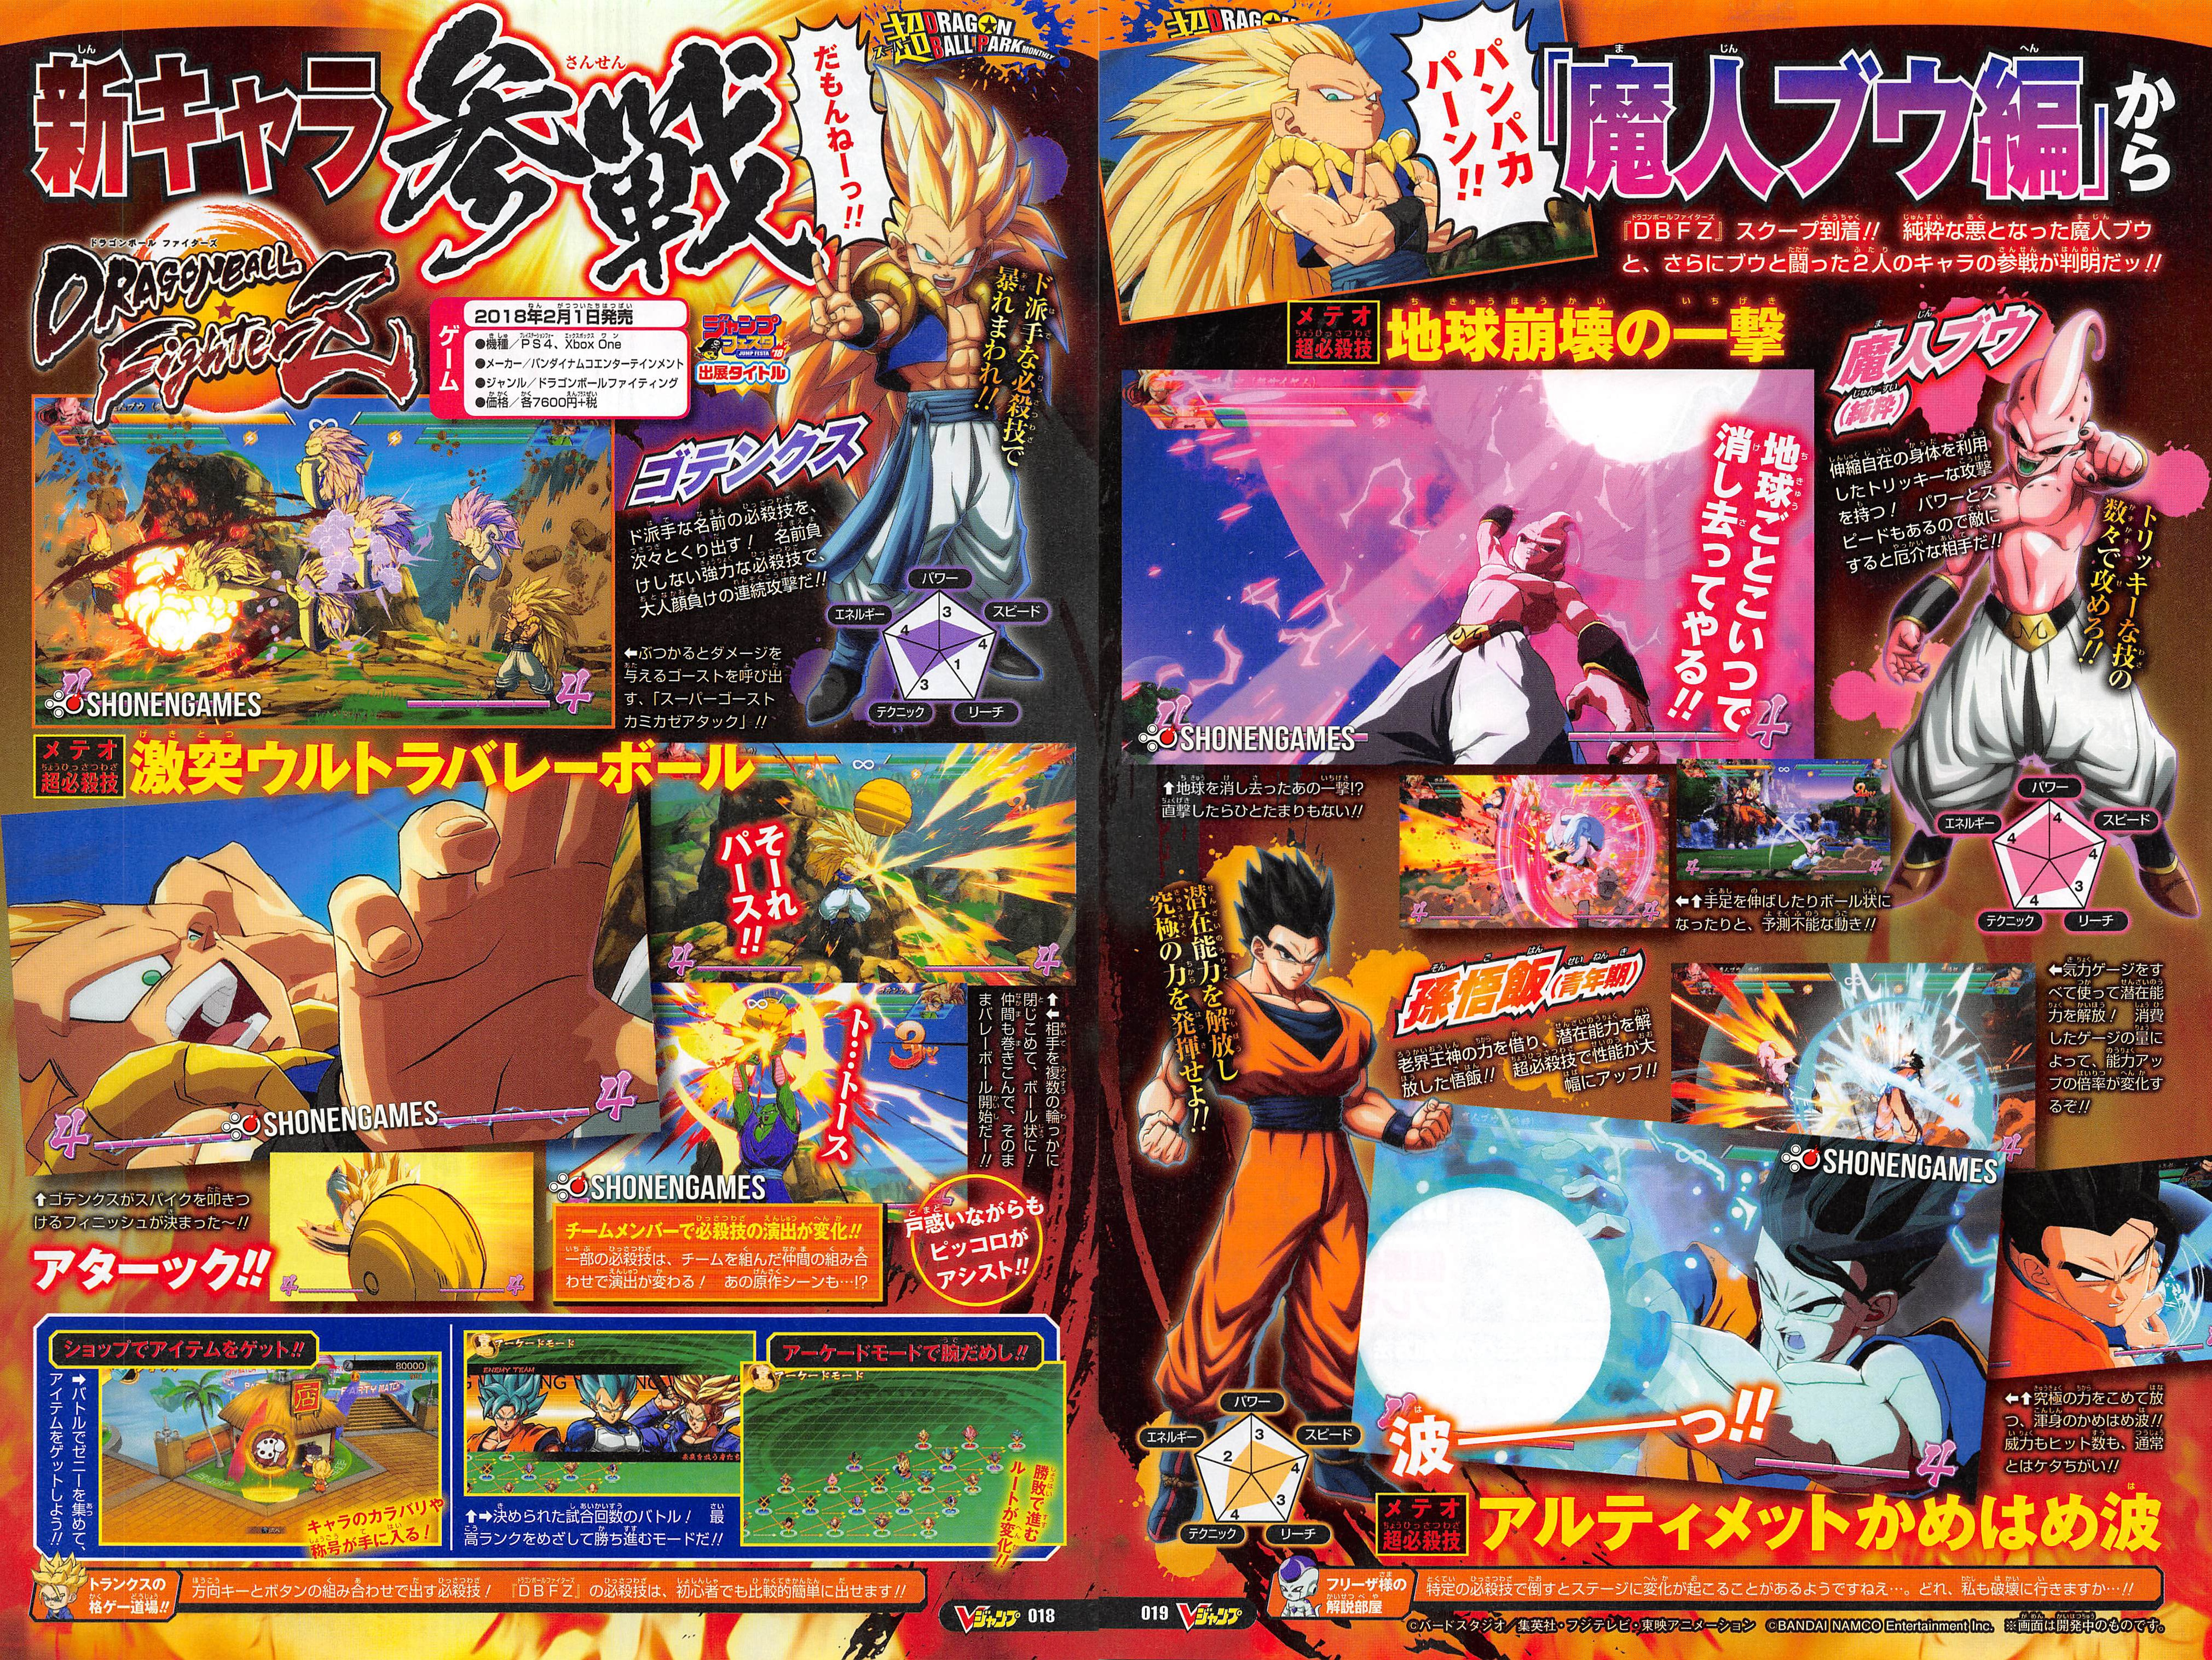 Dragon Ball FighterZ avec Gohan Ultime, Gotenks et Majin Boo Pur